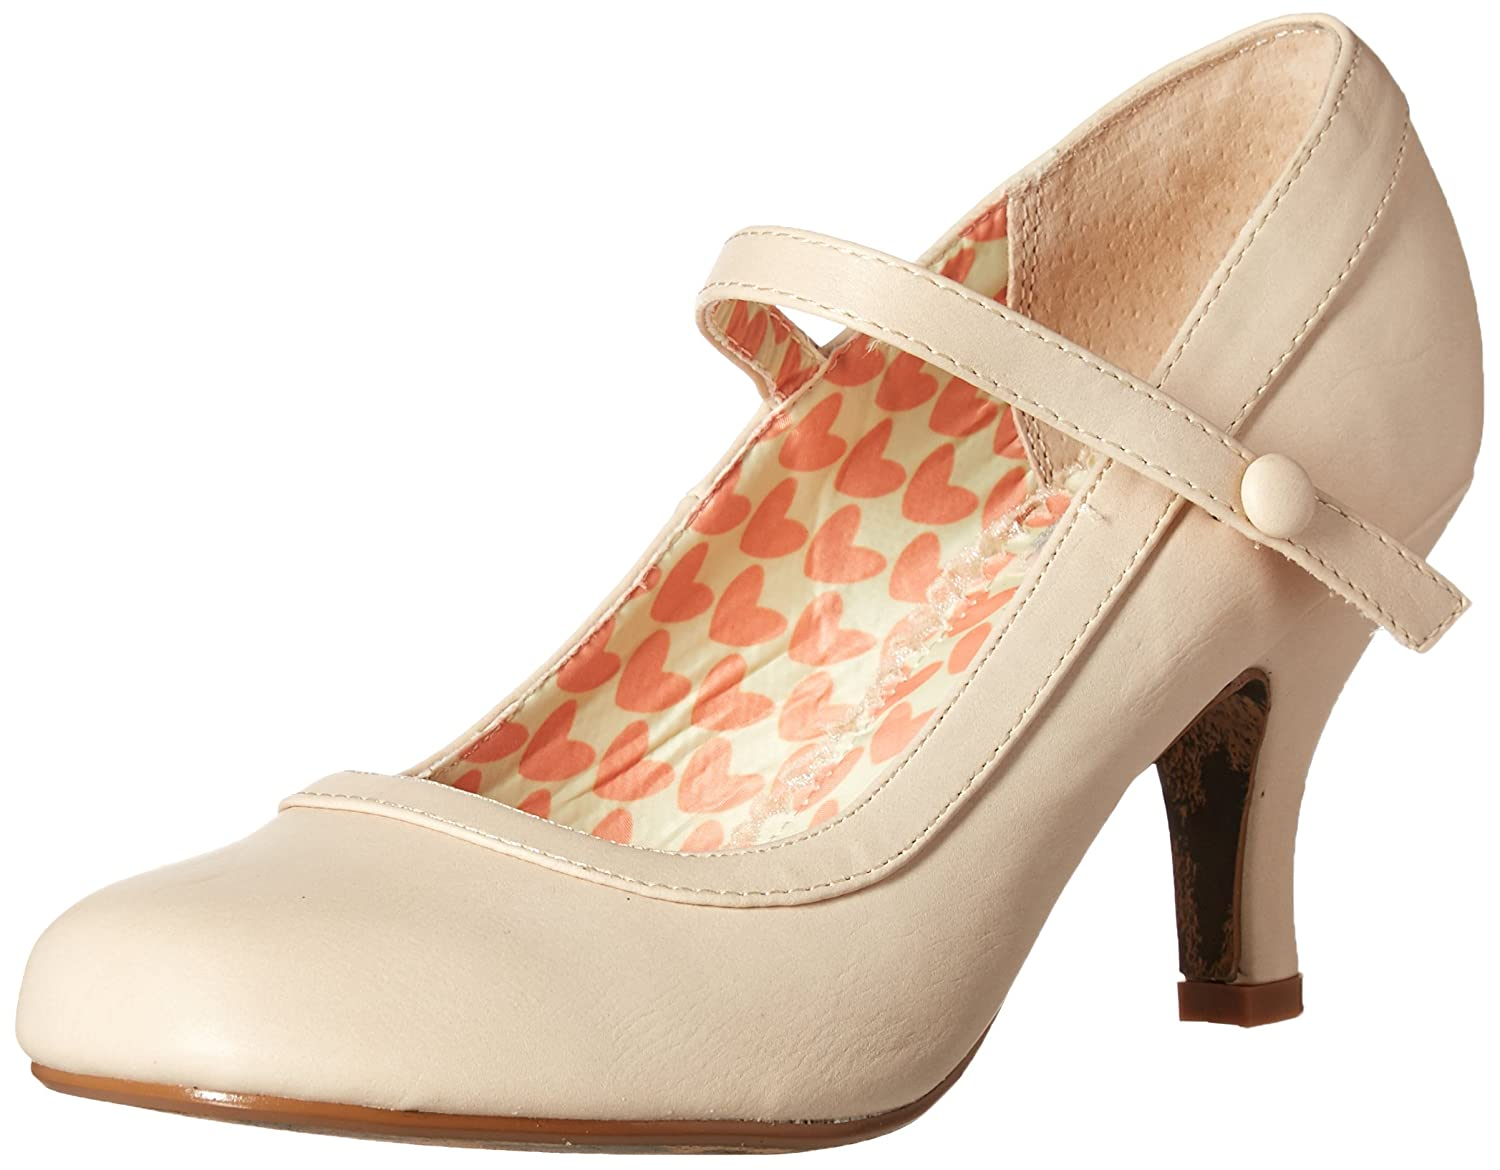 1930s Style Shoes – Art Deco Shoes Bettie Page Womens Bp320-Bettie Dress Pump $58.09 AT vintagedancer.com